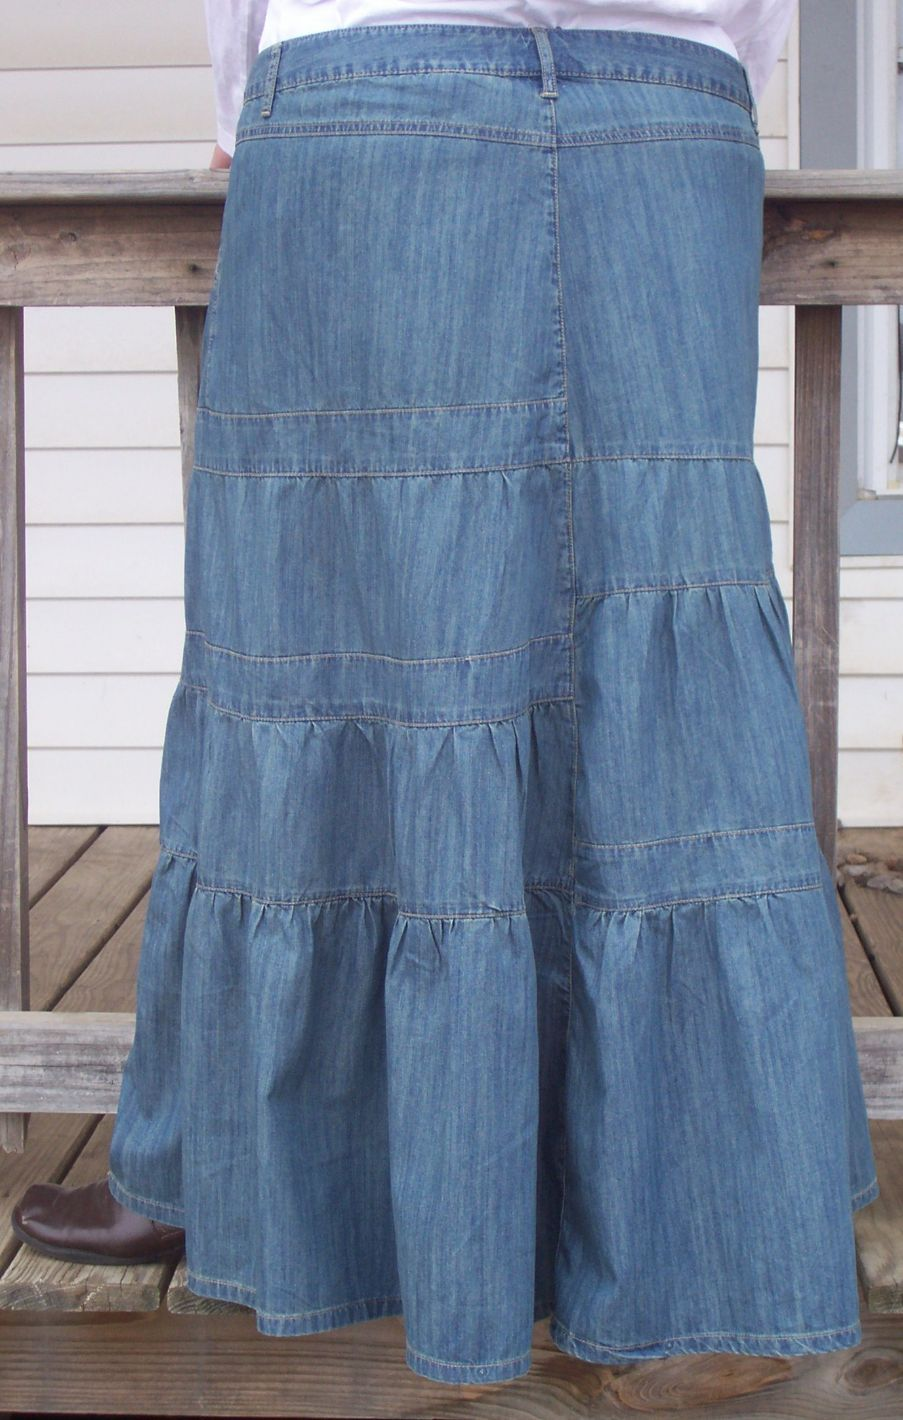 Plus size denim skirts and dresses